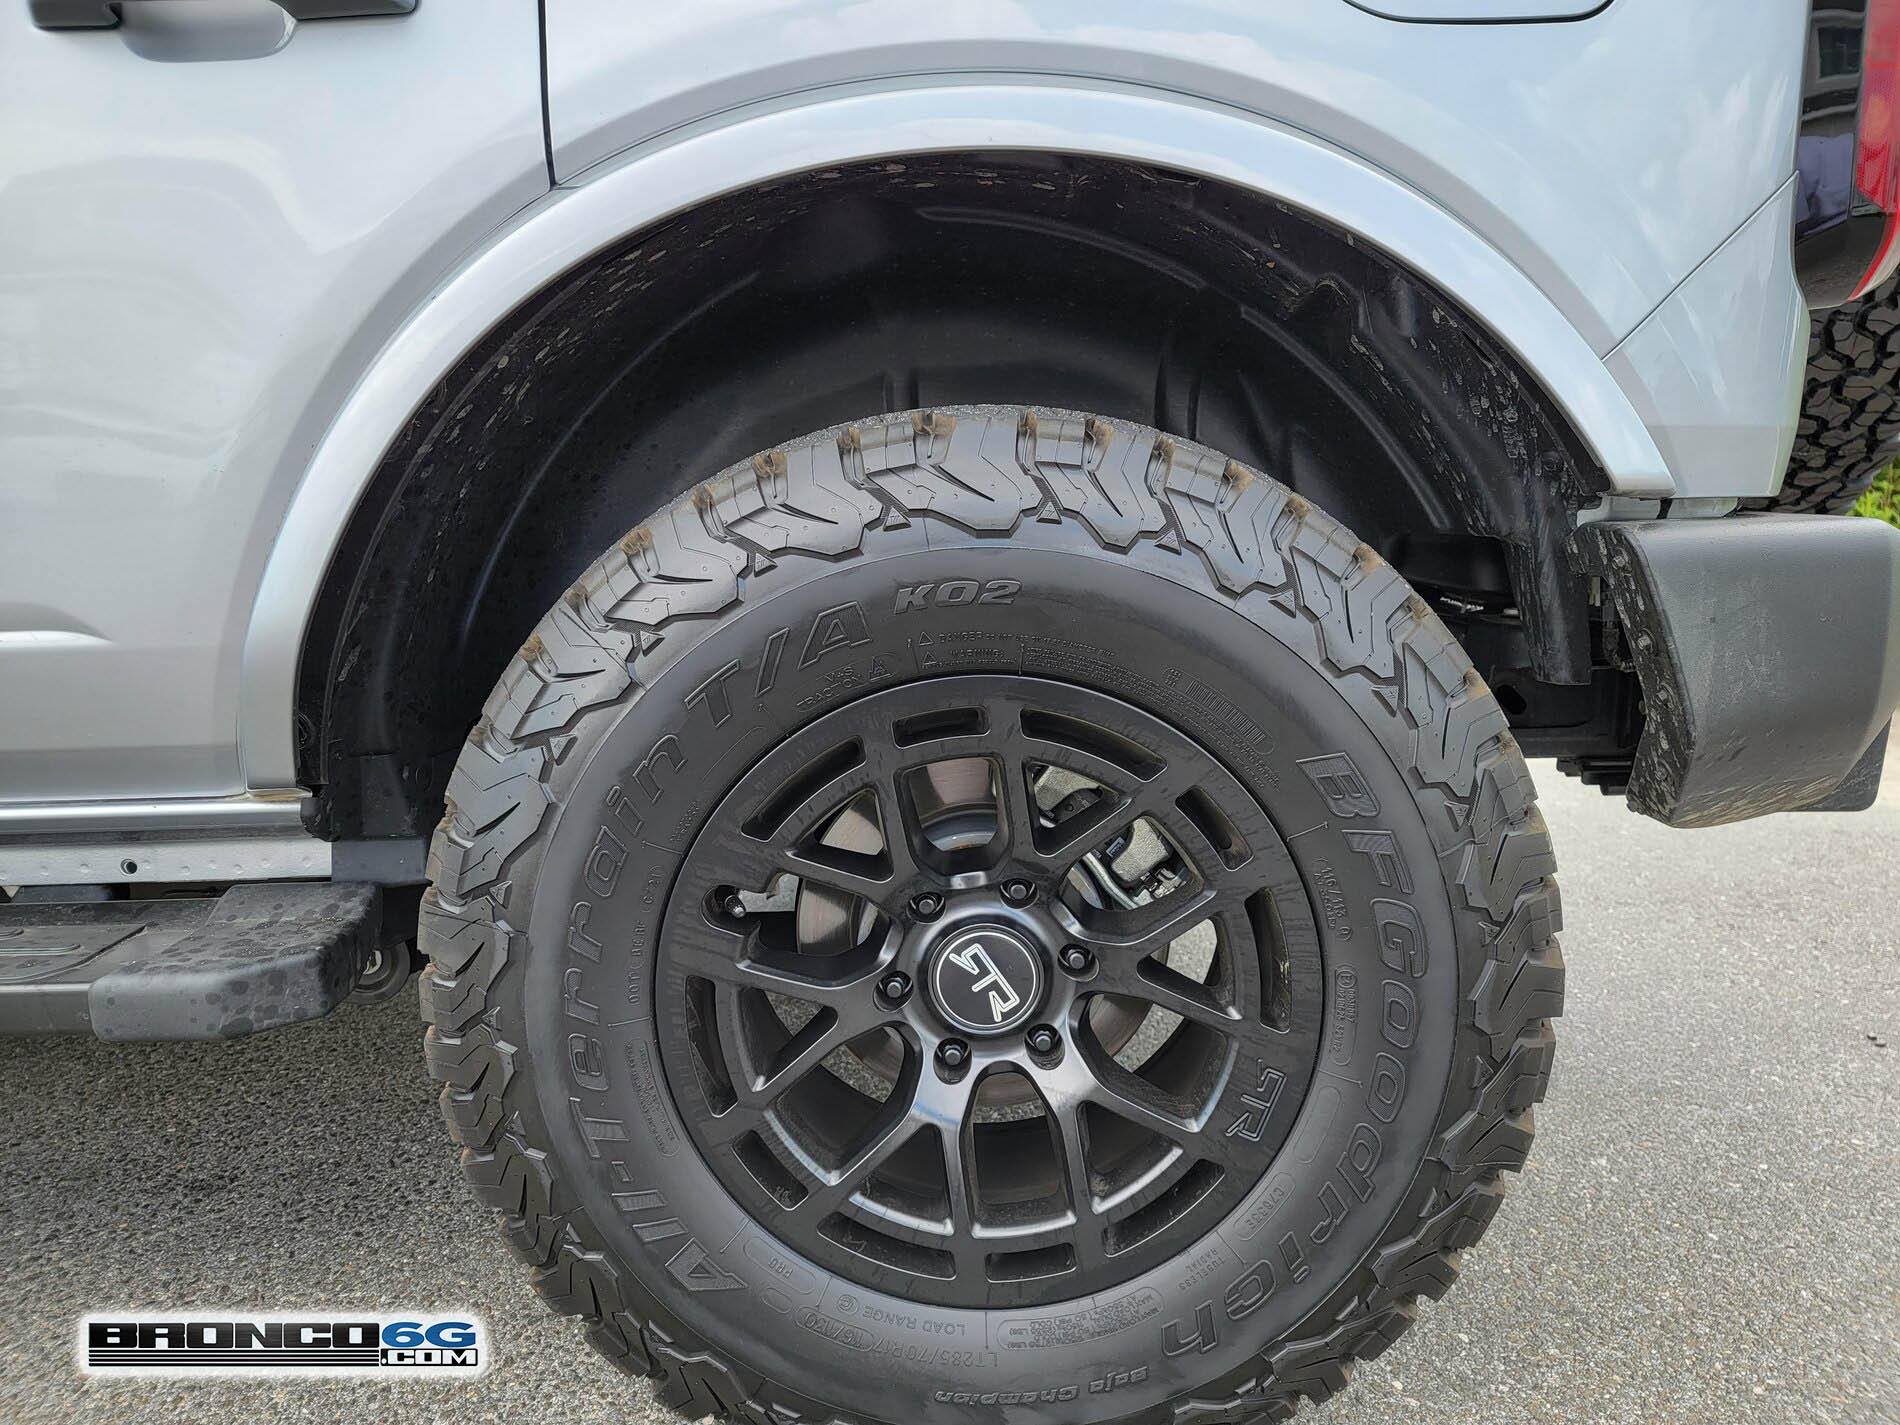 Zone Offroad 1%22 inch front leveling kit 2021 Bronco Outer Banks 2.jpg